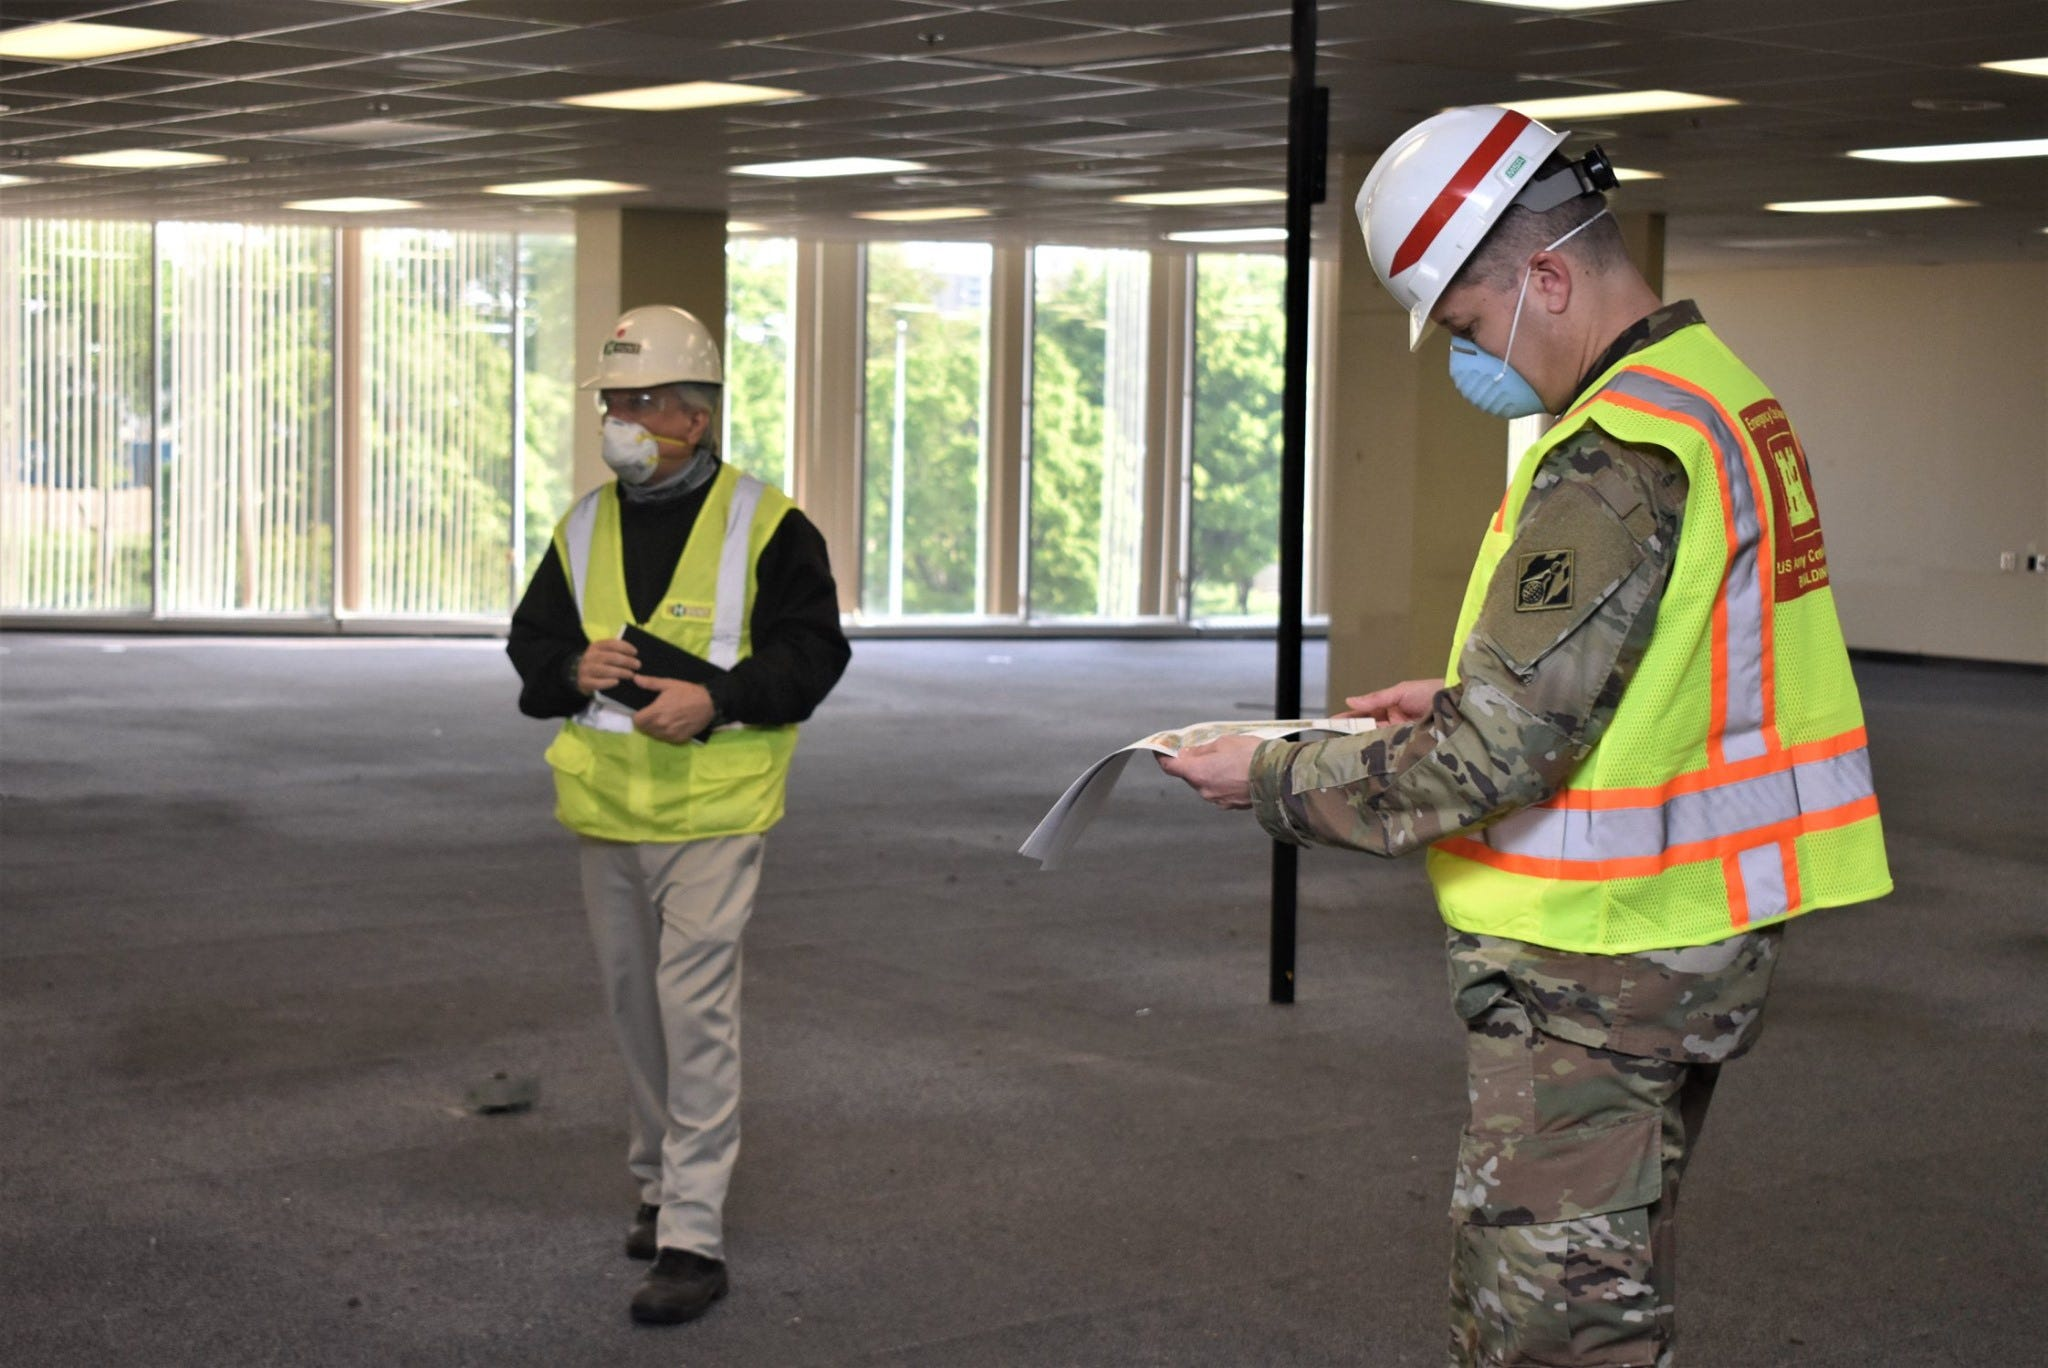 A U.S. Army Corps of Engineers worker reviews plans for the third floor of the former Commercial Appeal building in Memphis, which is being renovated as an Alternate Care Facility to treat COVID-19 patients. The Army issued a $51.4 million contract to AECOM for the project in April.